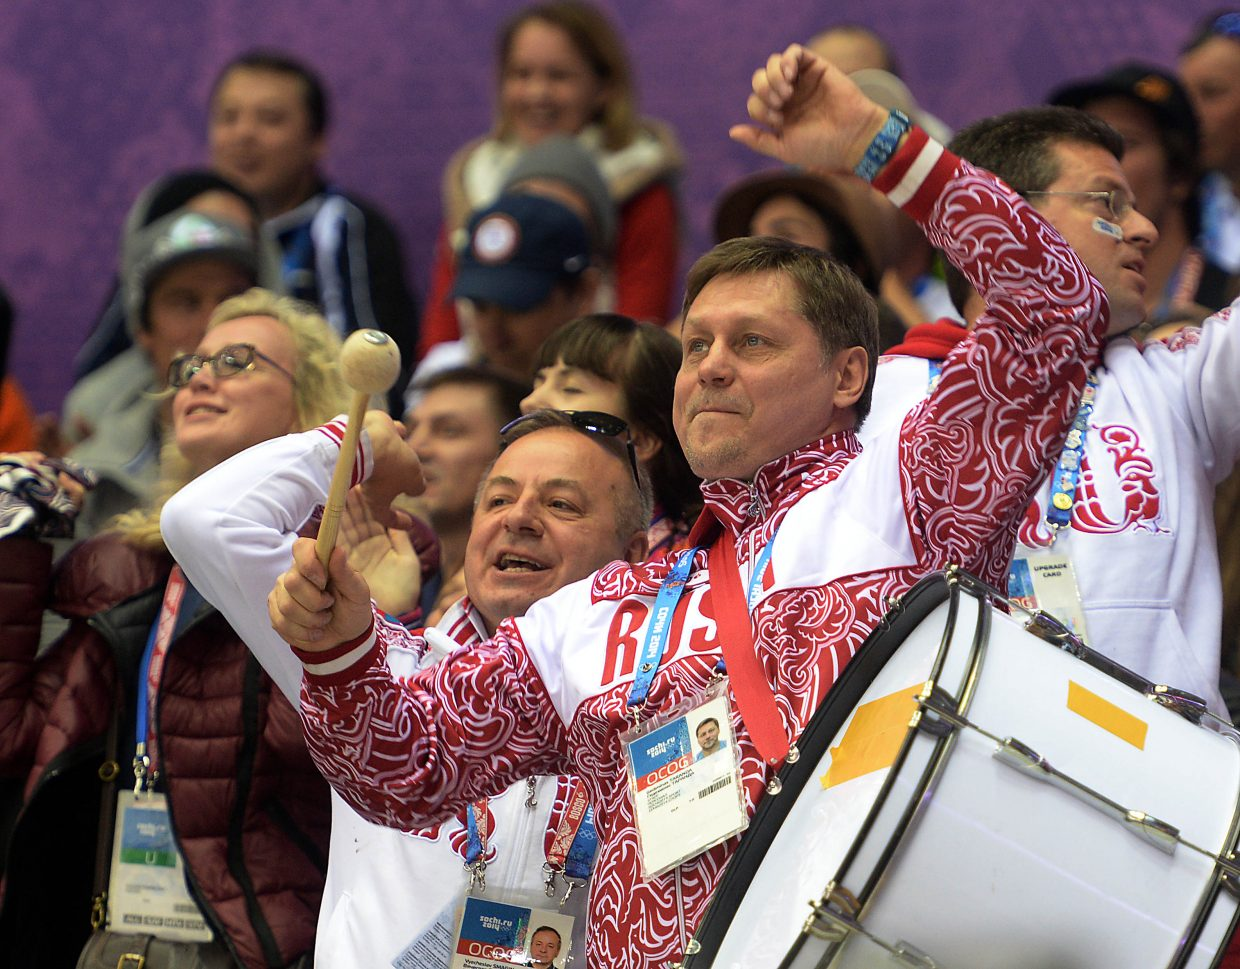 A Russian fan beats on a large drum Saturday at the U.S.-Russia men's hockey game.